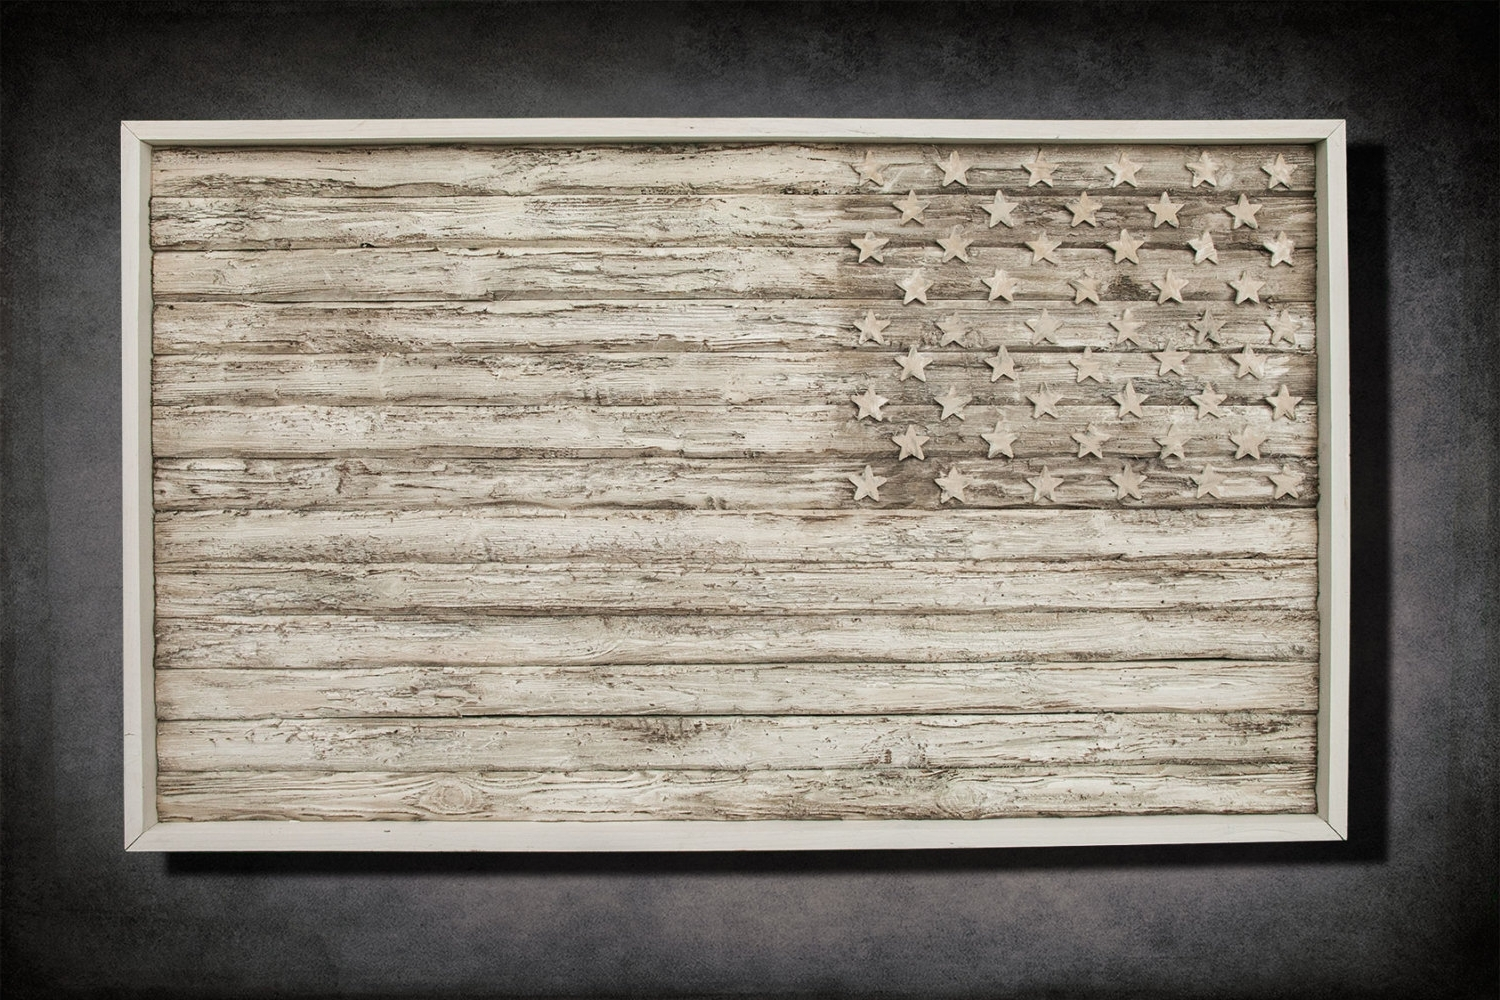 American Flag, Weathered Wood, One Of A Kind, 3d, Wooden, Vintage Throughout Fashionable Vintage American Flag Wall Art (View 4 of 20)